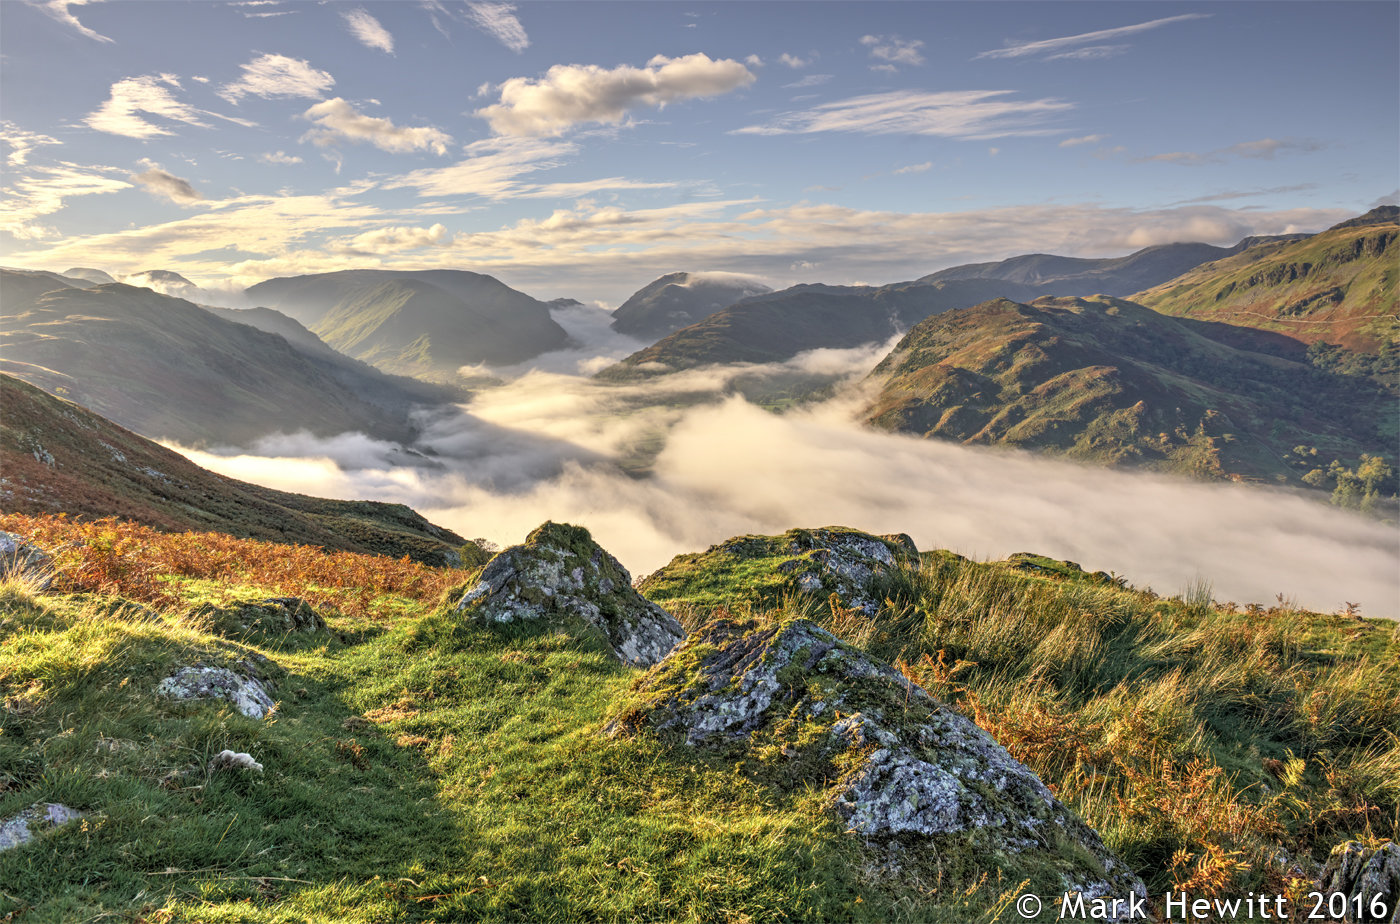 Above The Clouds (Cloud Inversion From Place Fell)